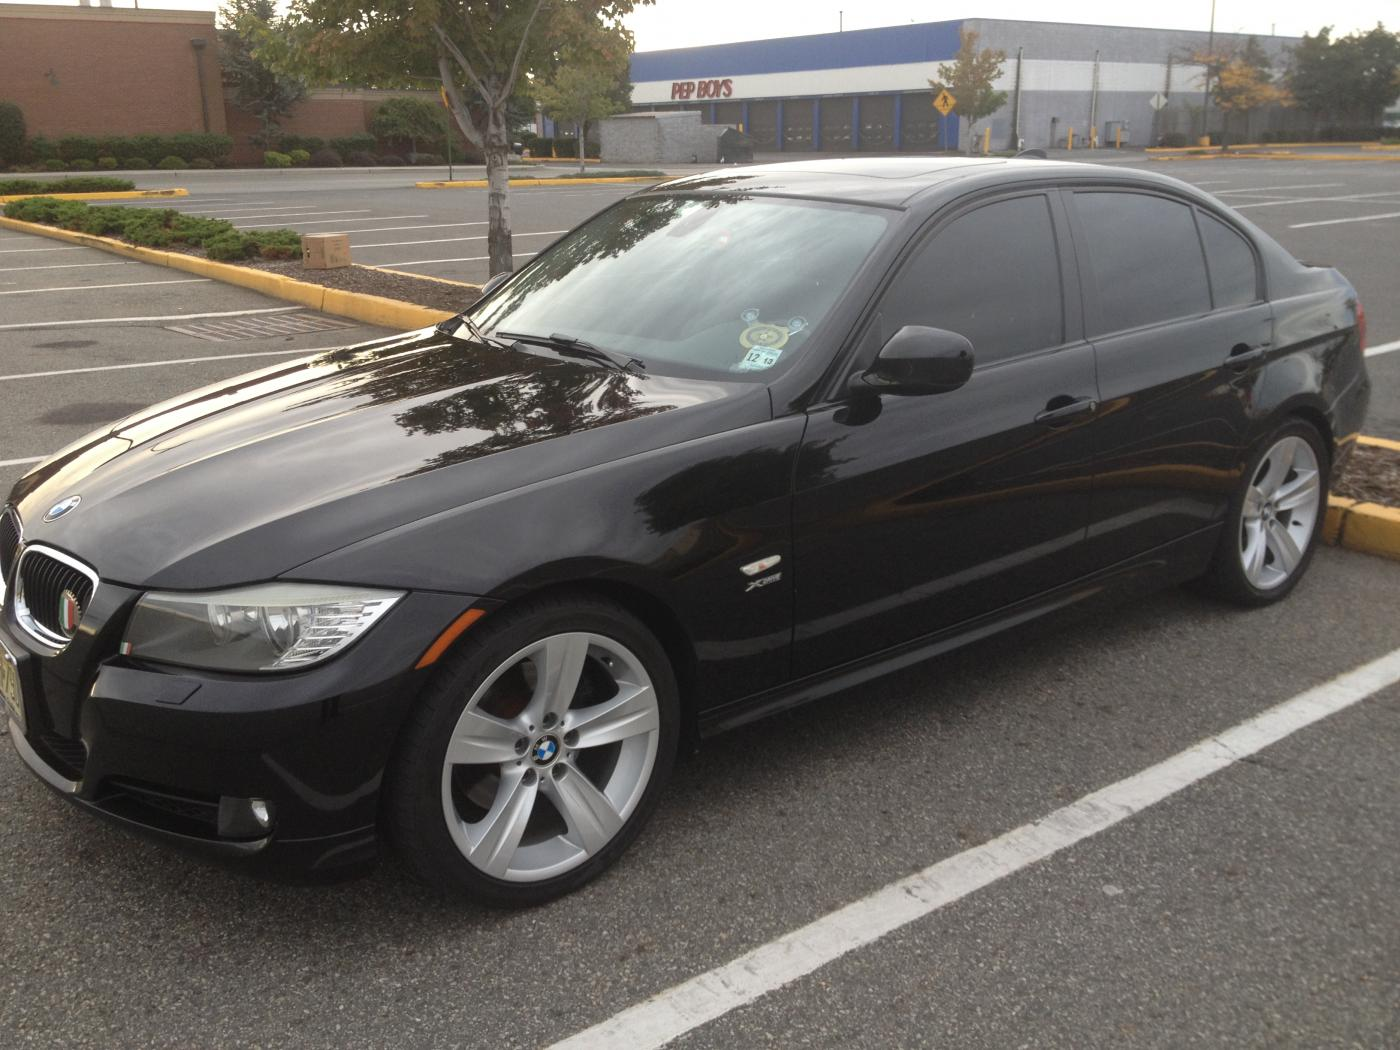 Coupe Series bmw e90 for sale For Sale + Trade Bmw Style 189 Wheels Mint!!!!!!!!!